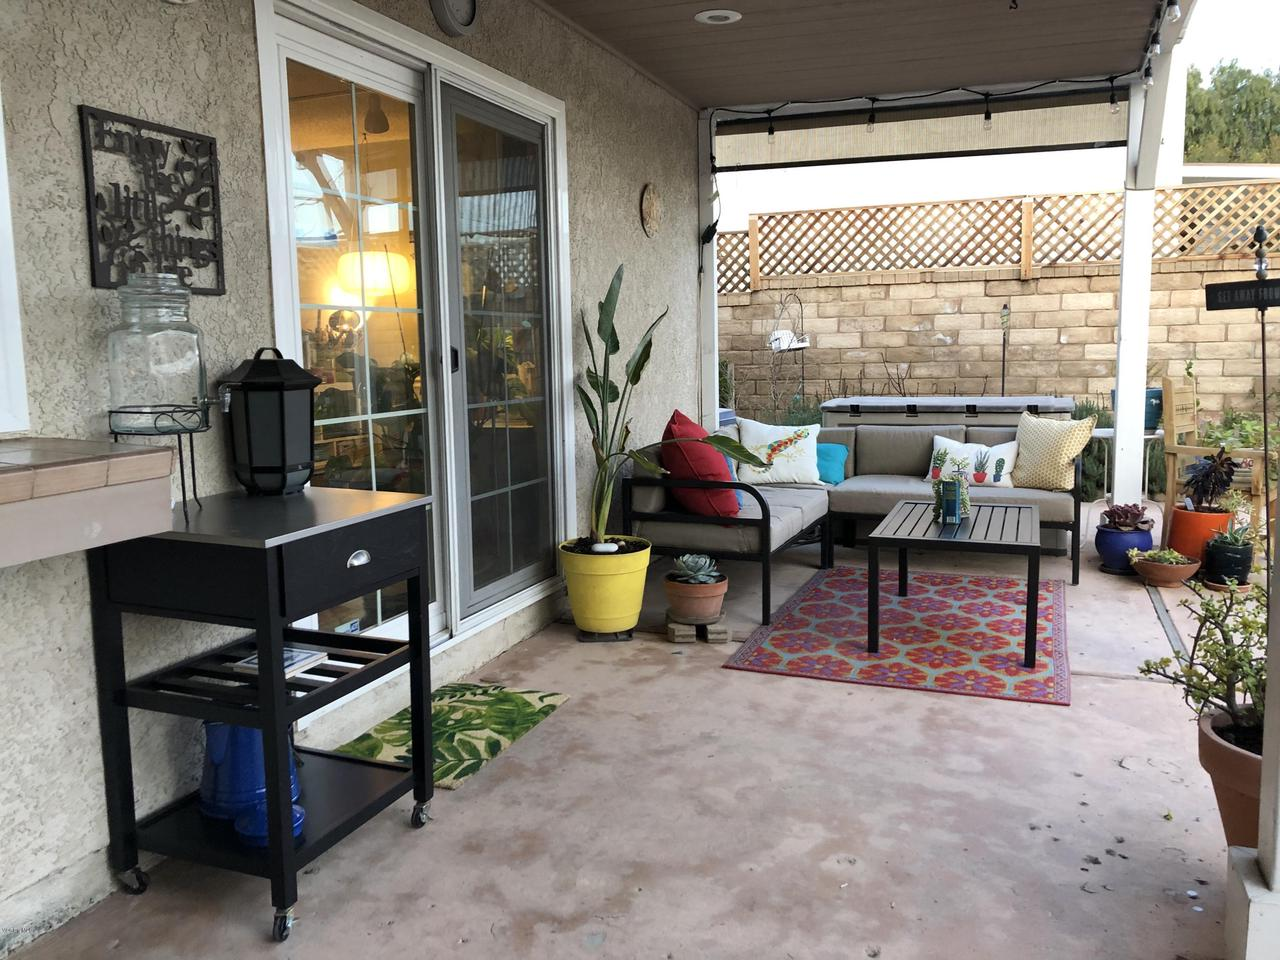 5228 MOHAVE, Simi Valley, CA 93063 - 5228 Mohave Dr 5